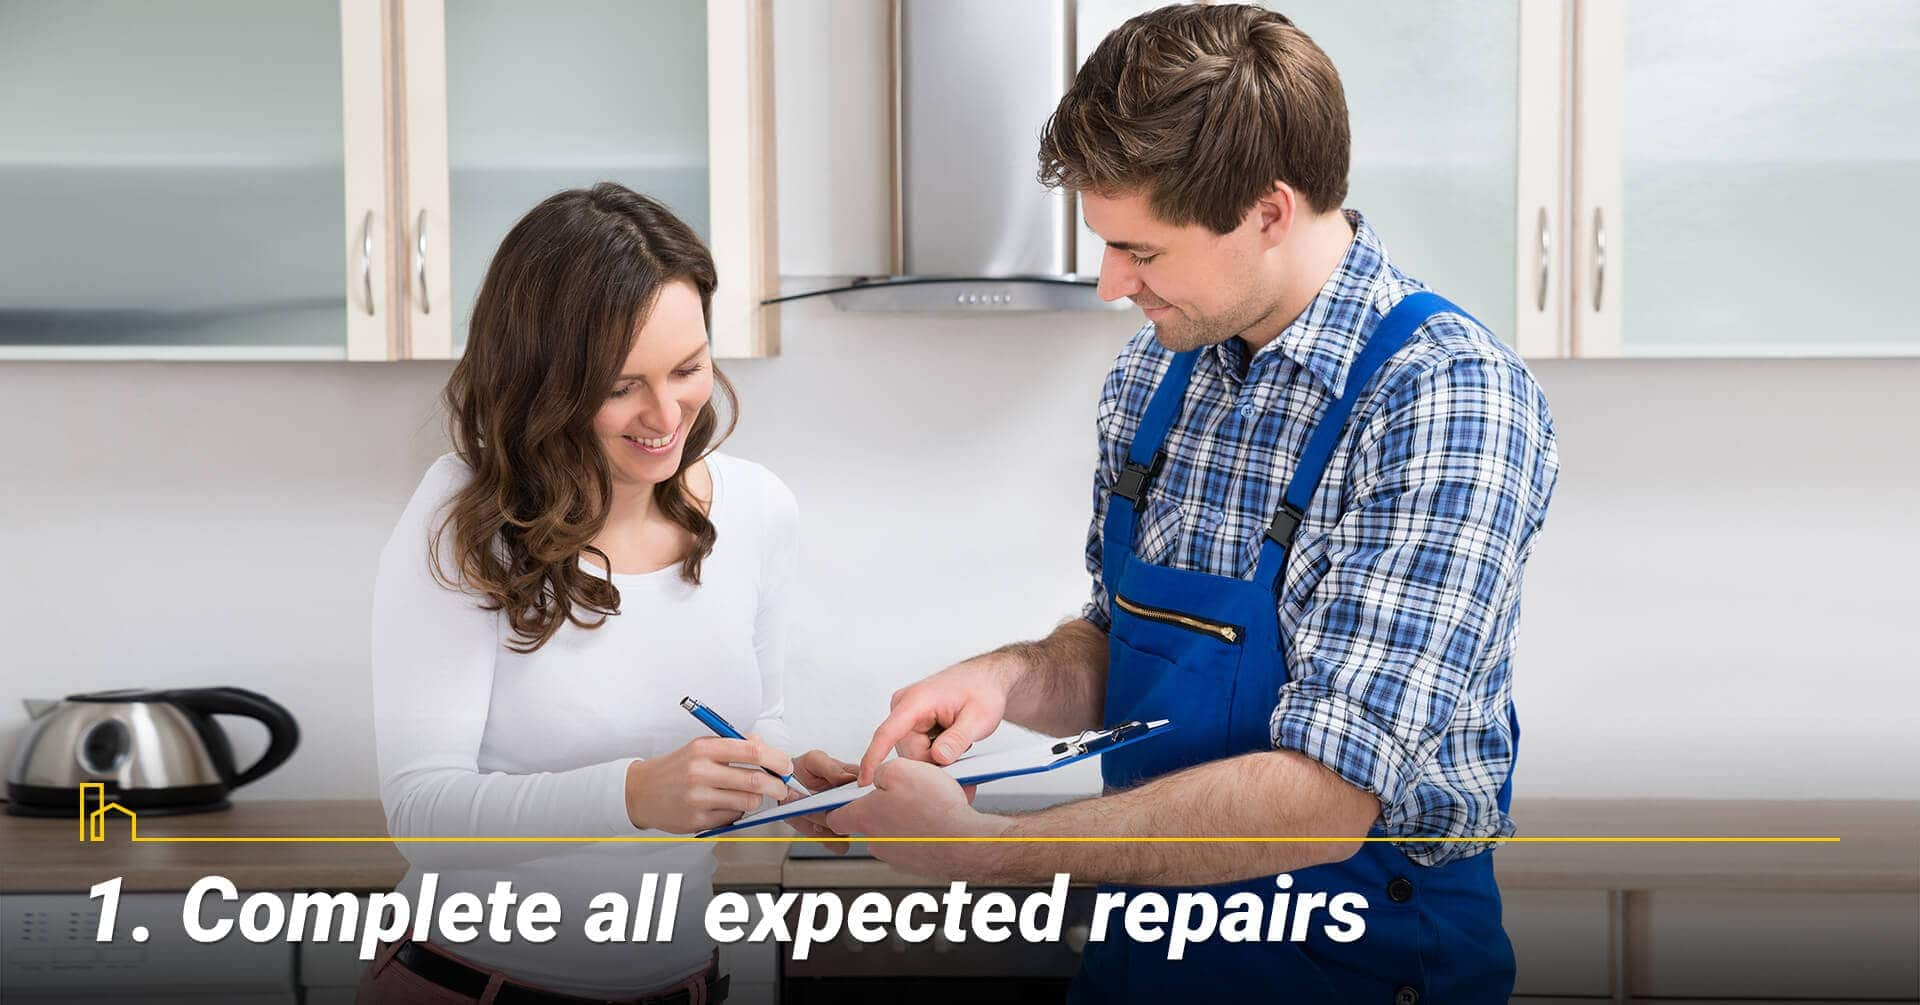 Complete all expected repairs